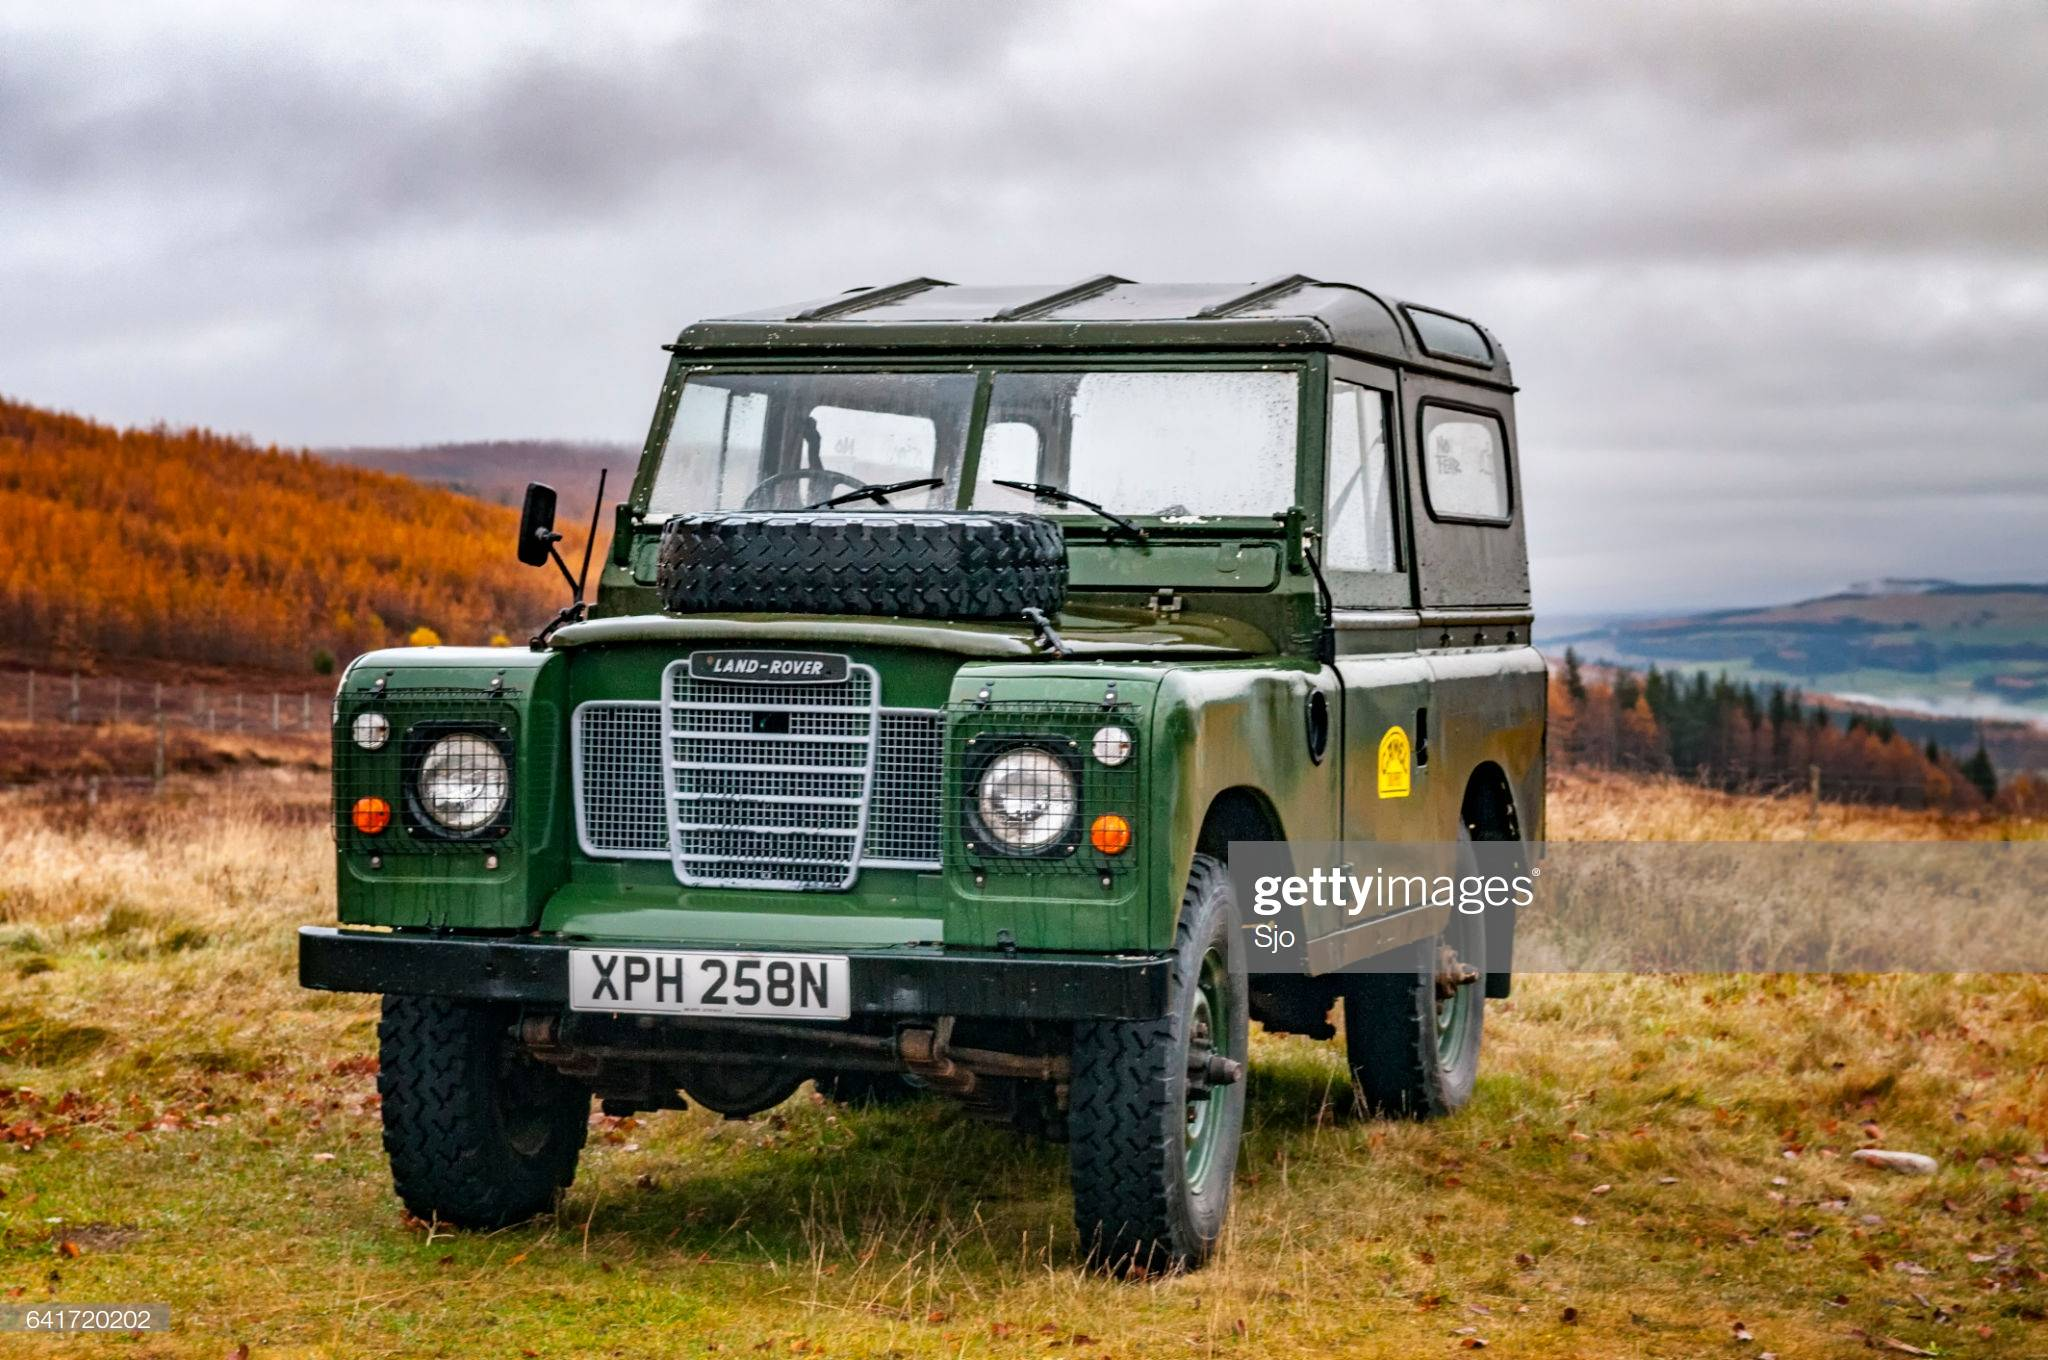 Old Land Rover Defender parked on a mountain in the Scottish Highlands near the town of Pitlochry during Autumn.